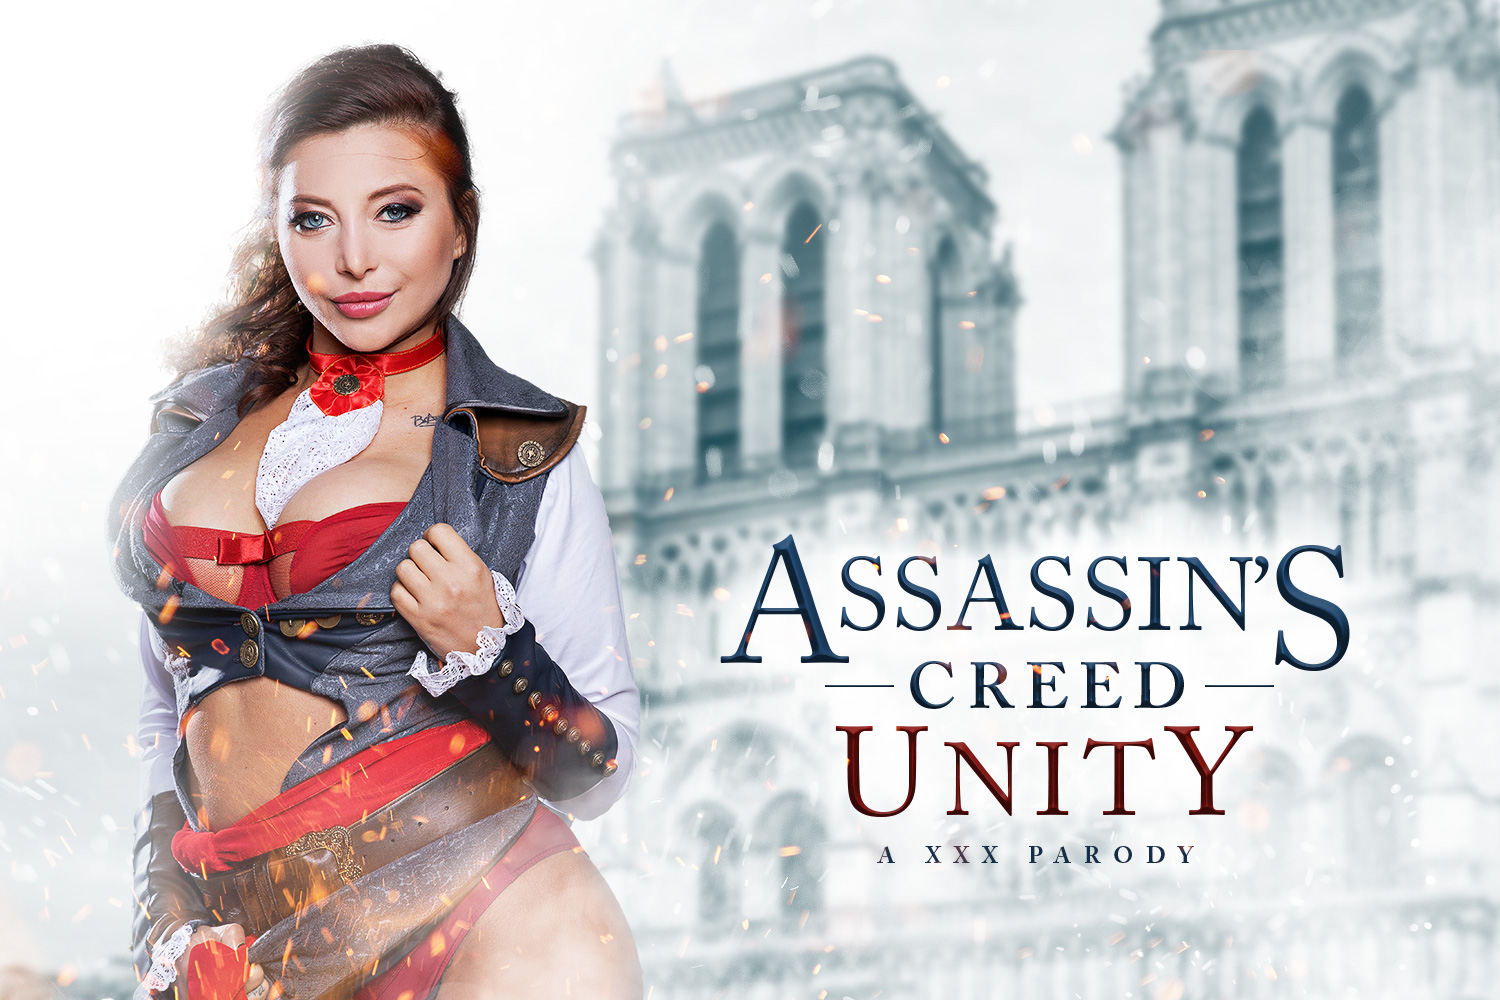 Assassins Creed: Unity A XXX Parody